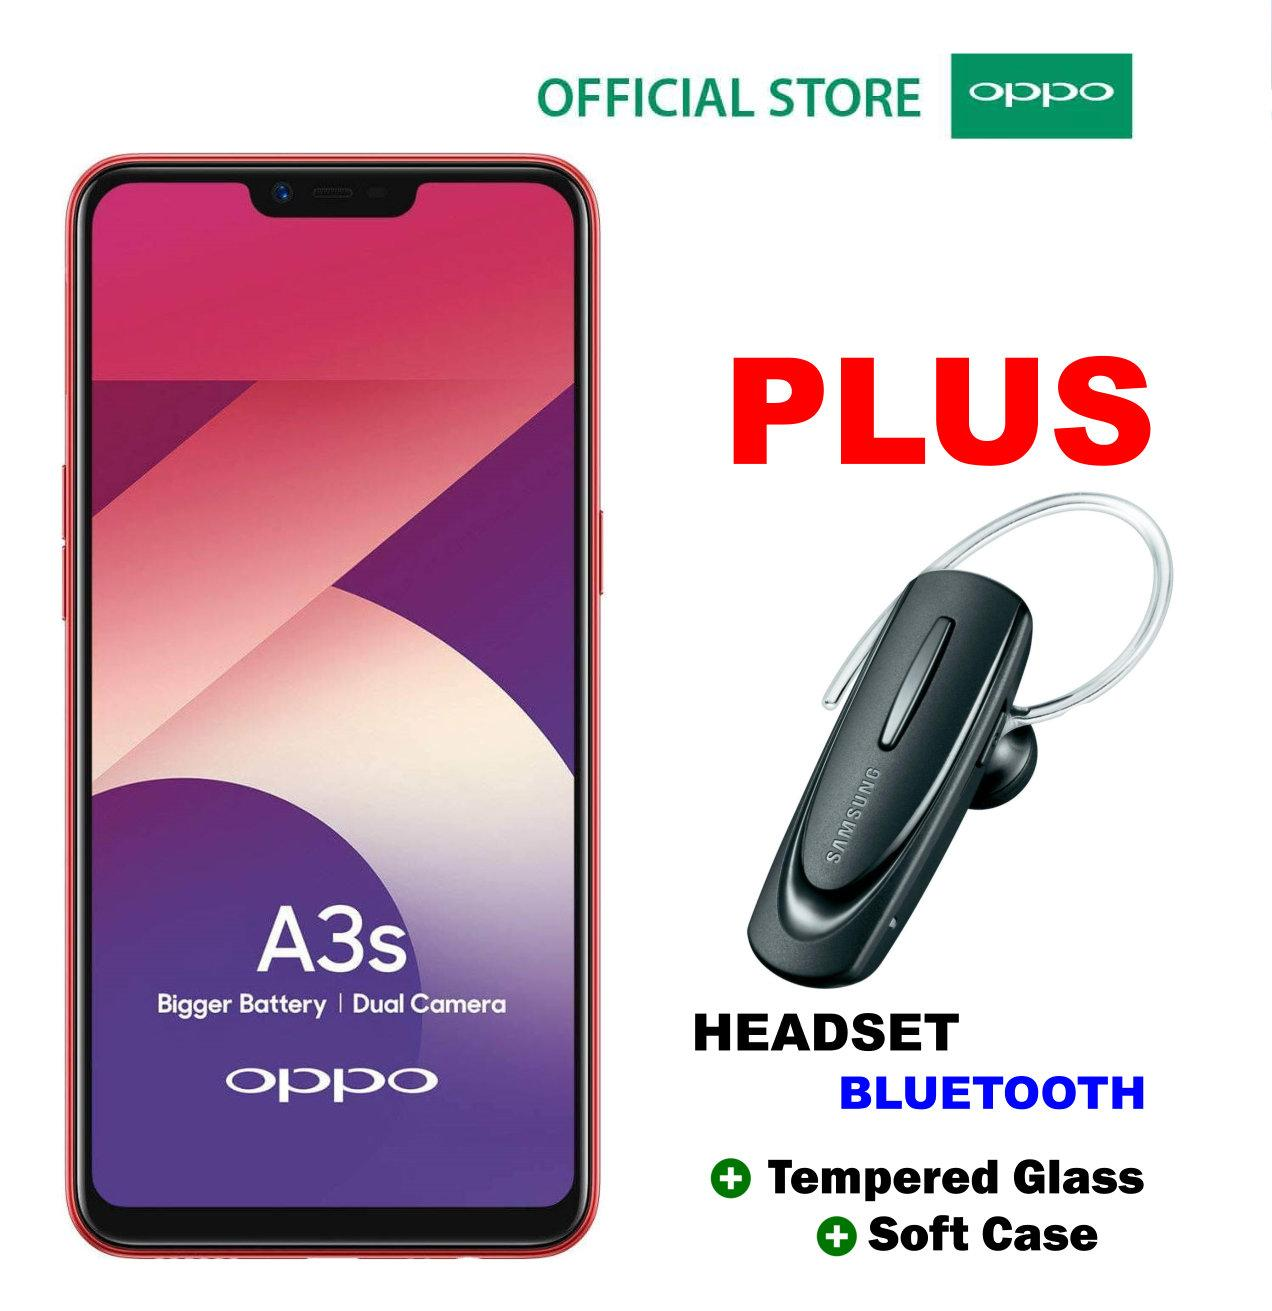 OPPO A3S 2/16GB - Plus Headset Bluetooth